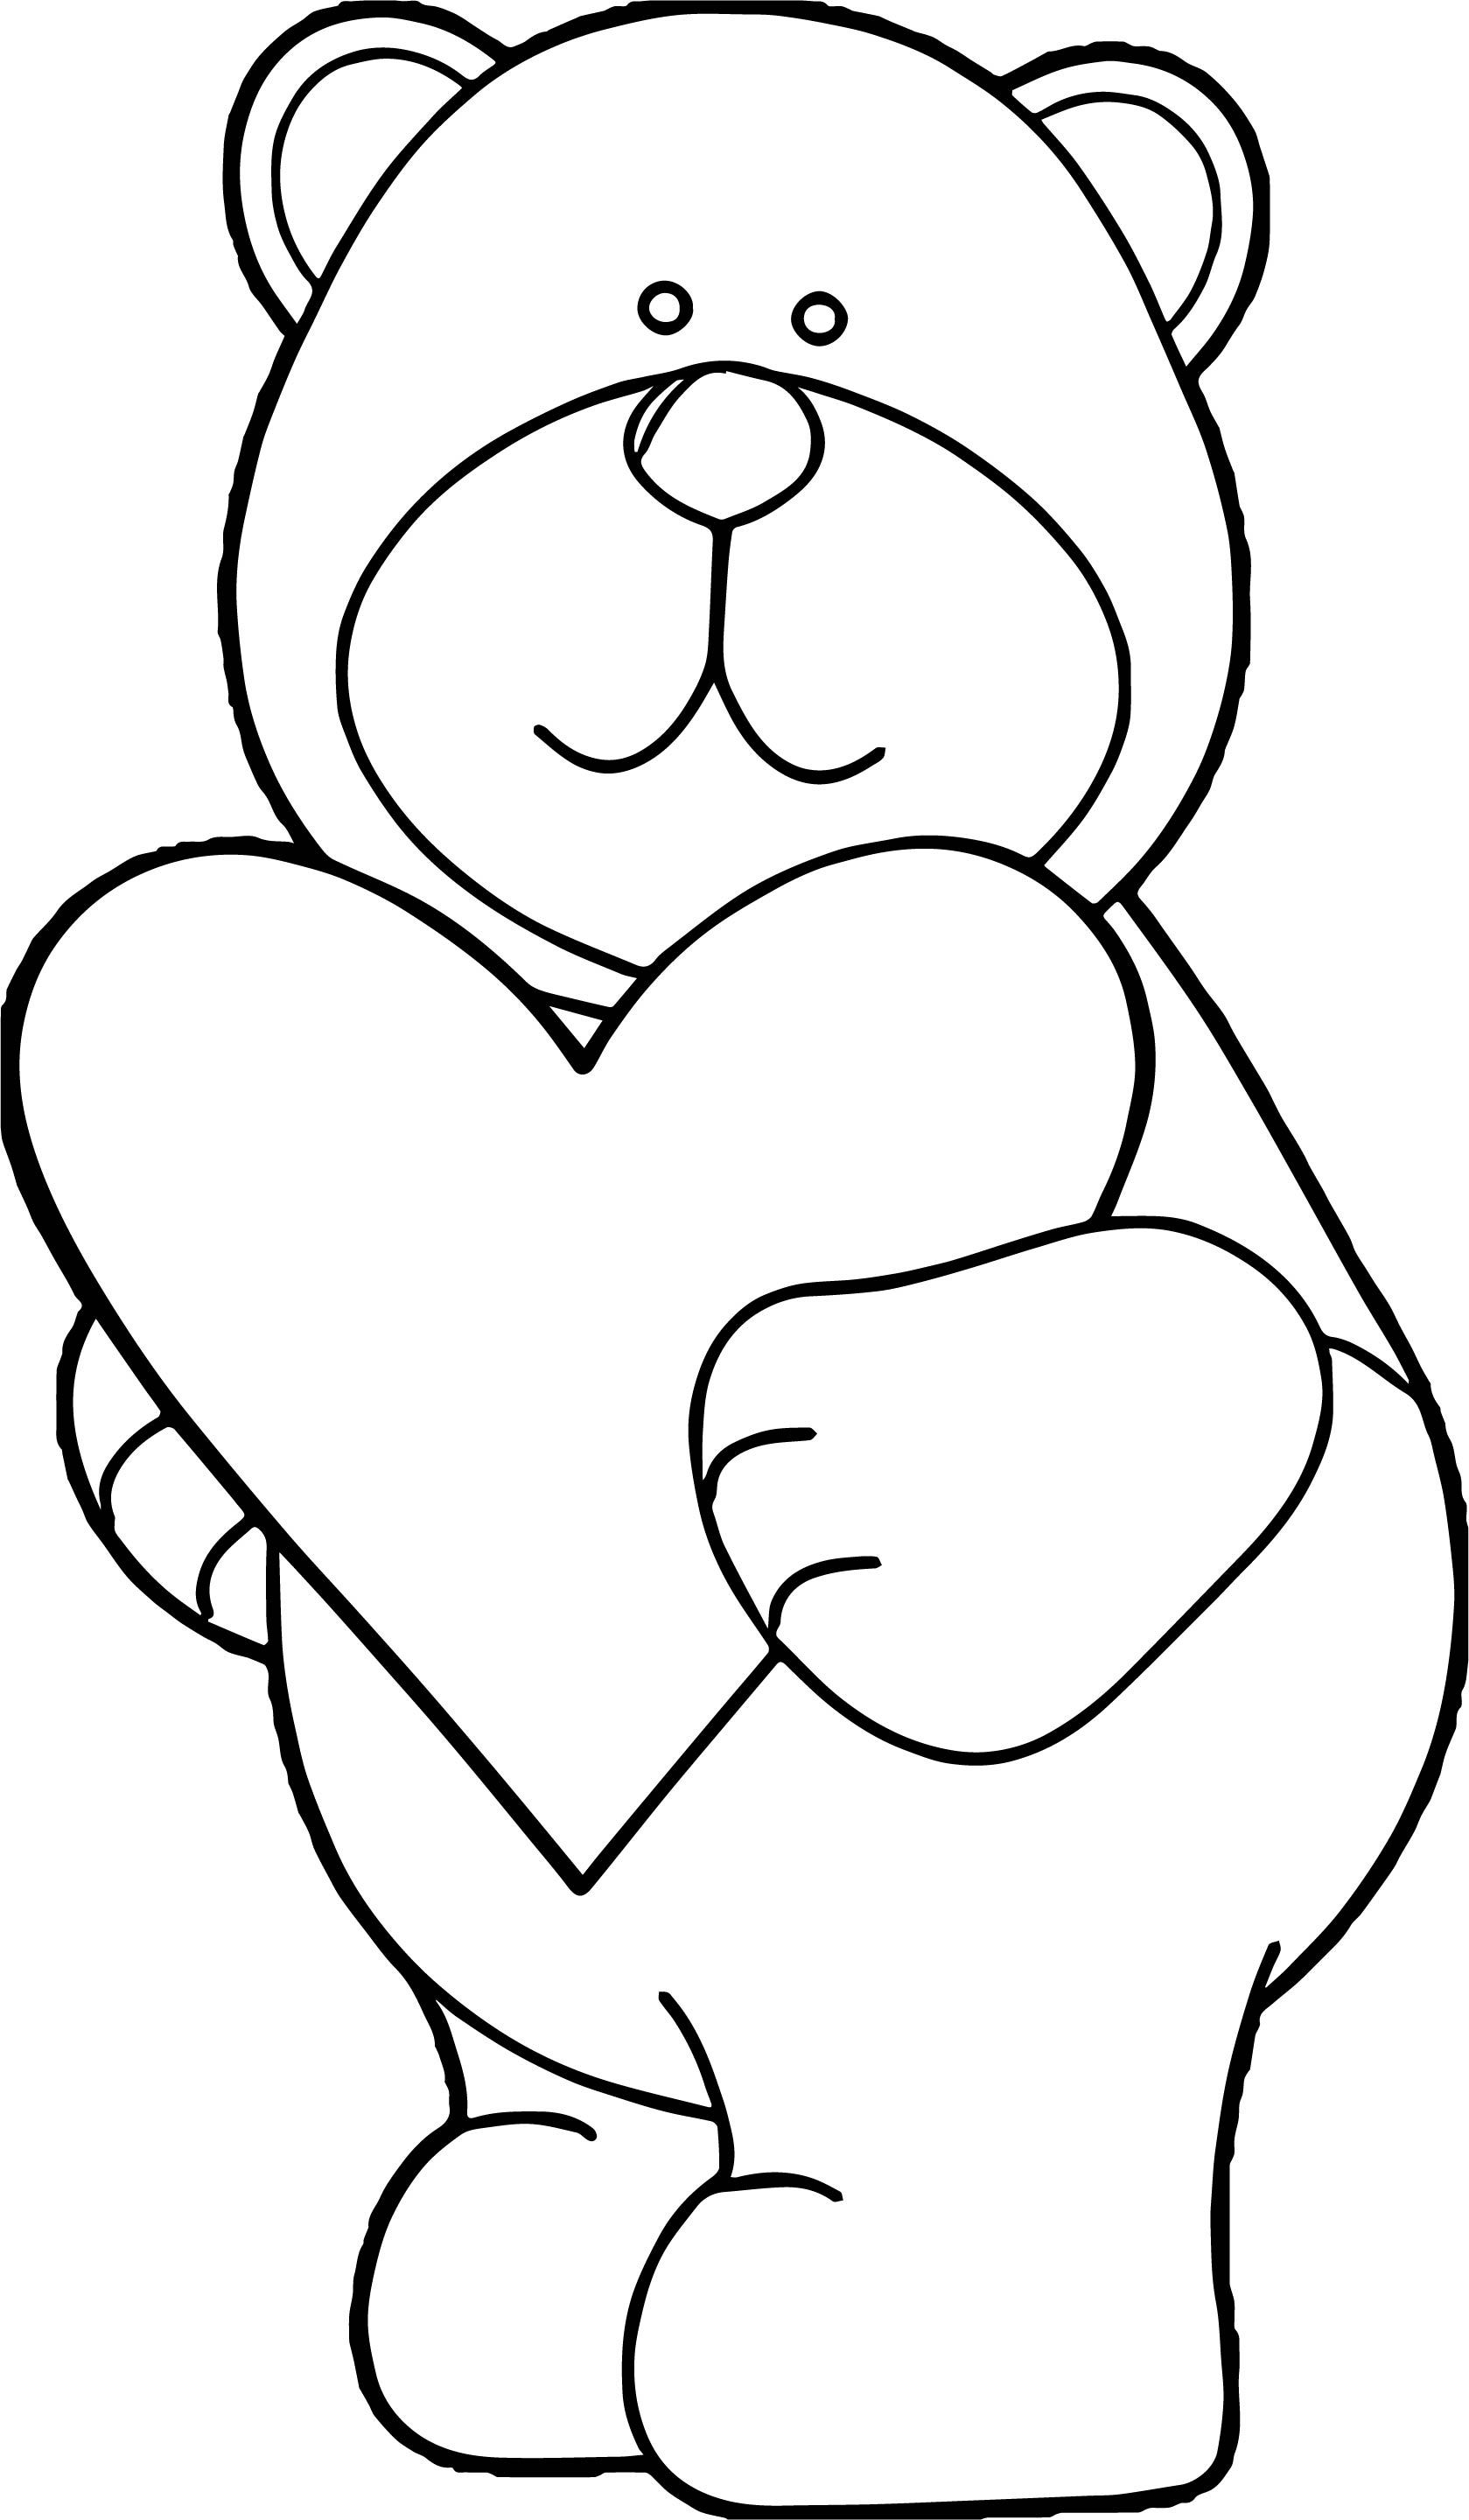 1679x2880 Teddy Bear Holding A Heart Coloring Pages